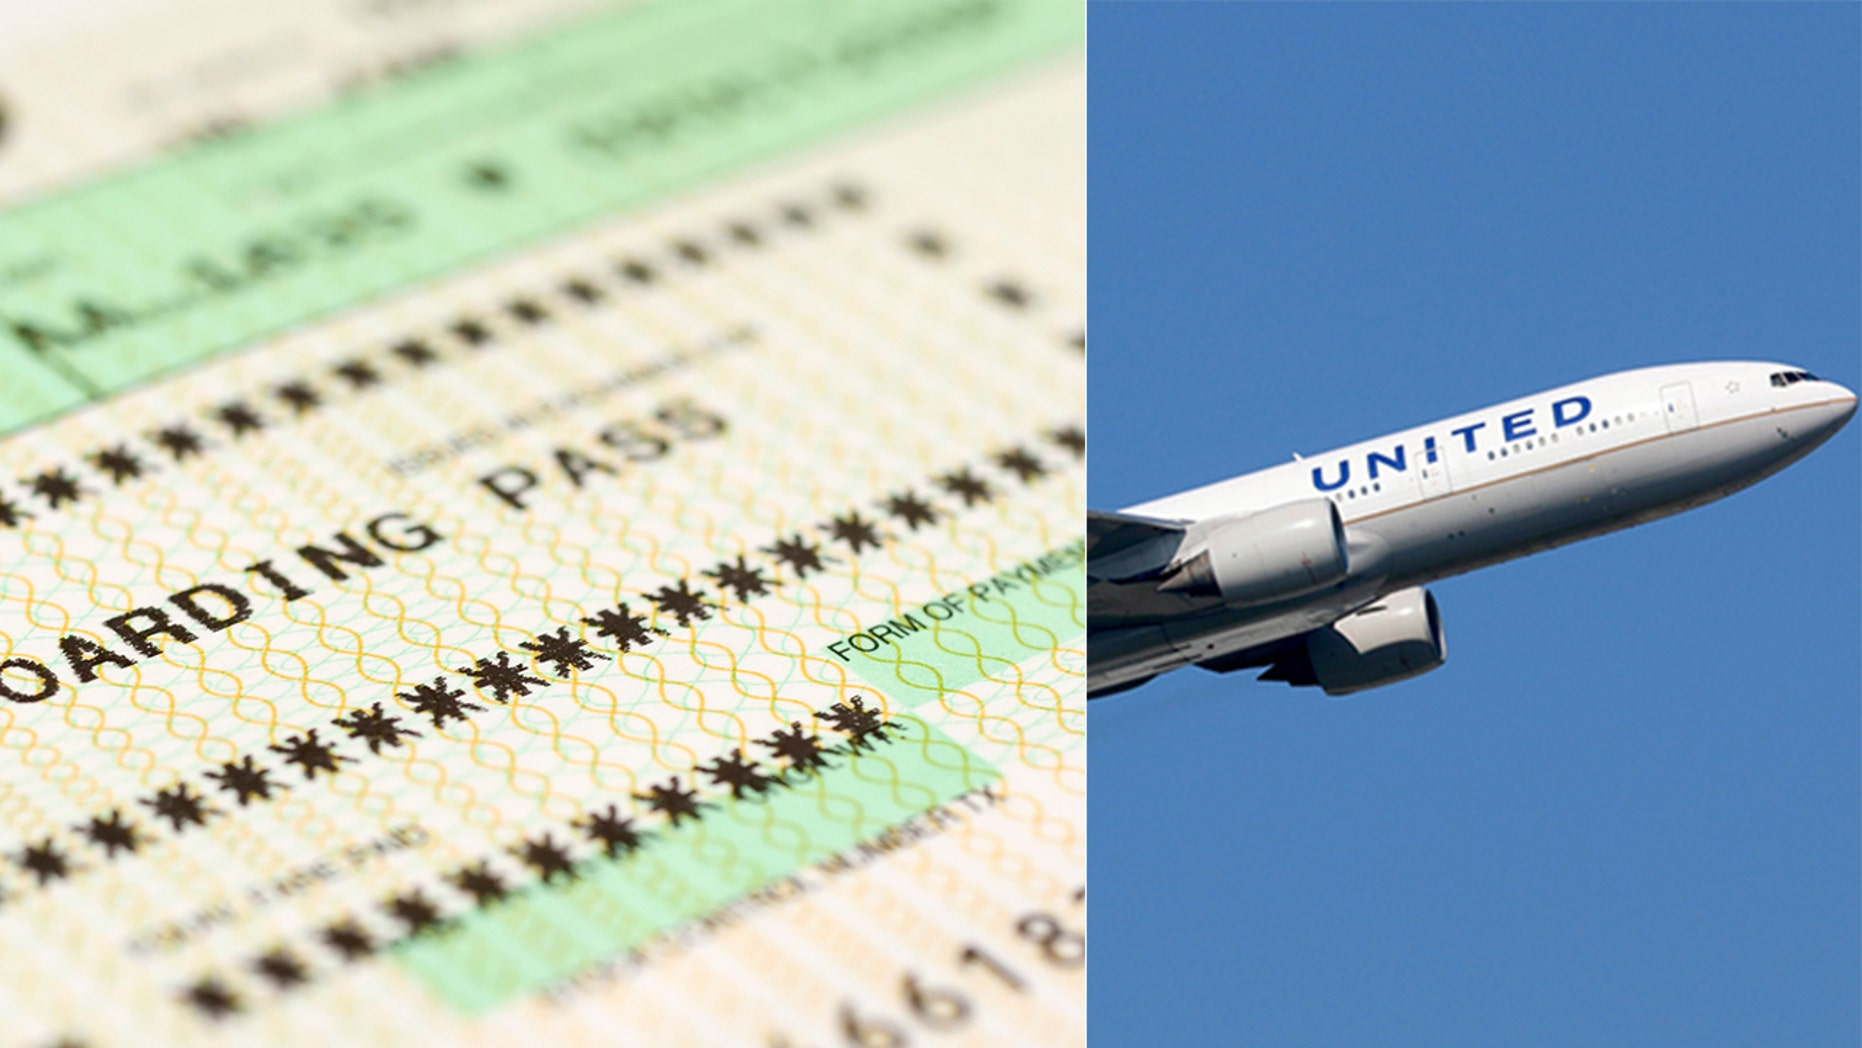 United Airlines has honored a man's 19-year-old ticket, even though they were not legally bound to.